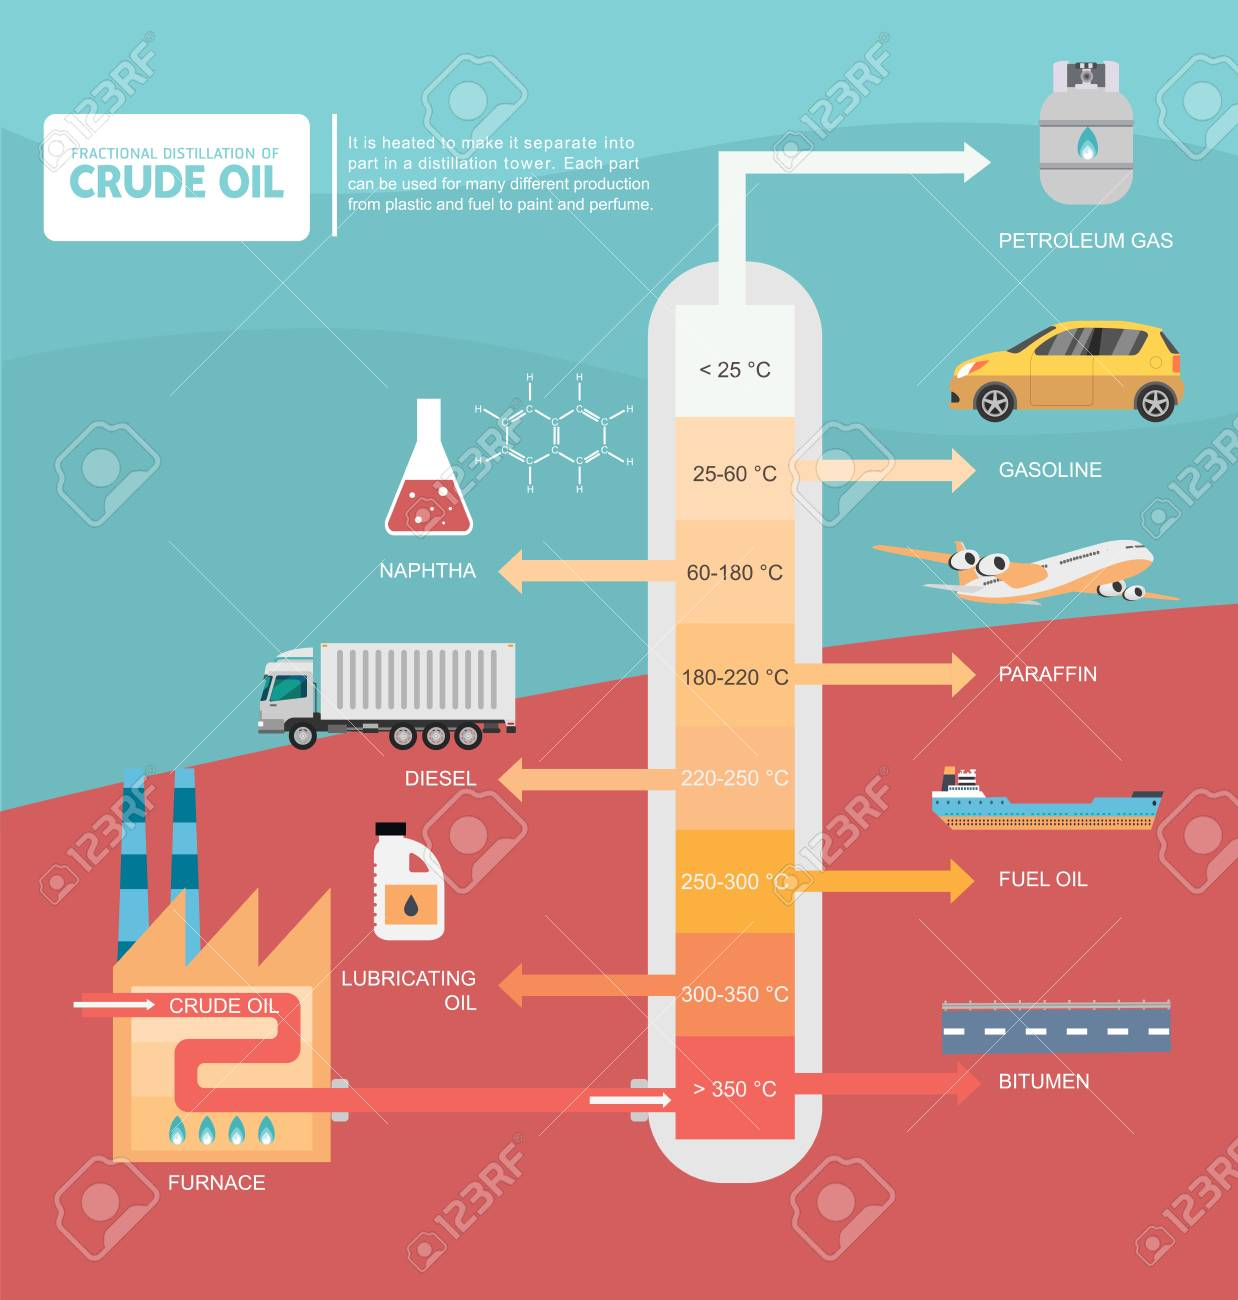 Fractional distillation of crude oil diagram illustration royalty fractional distillation of crude oil diagram illustration imagens 89121094 ccuart Image collections